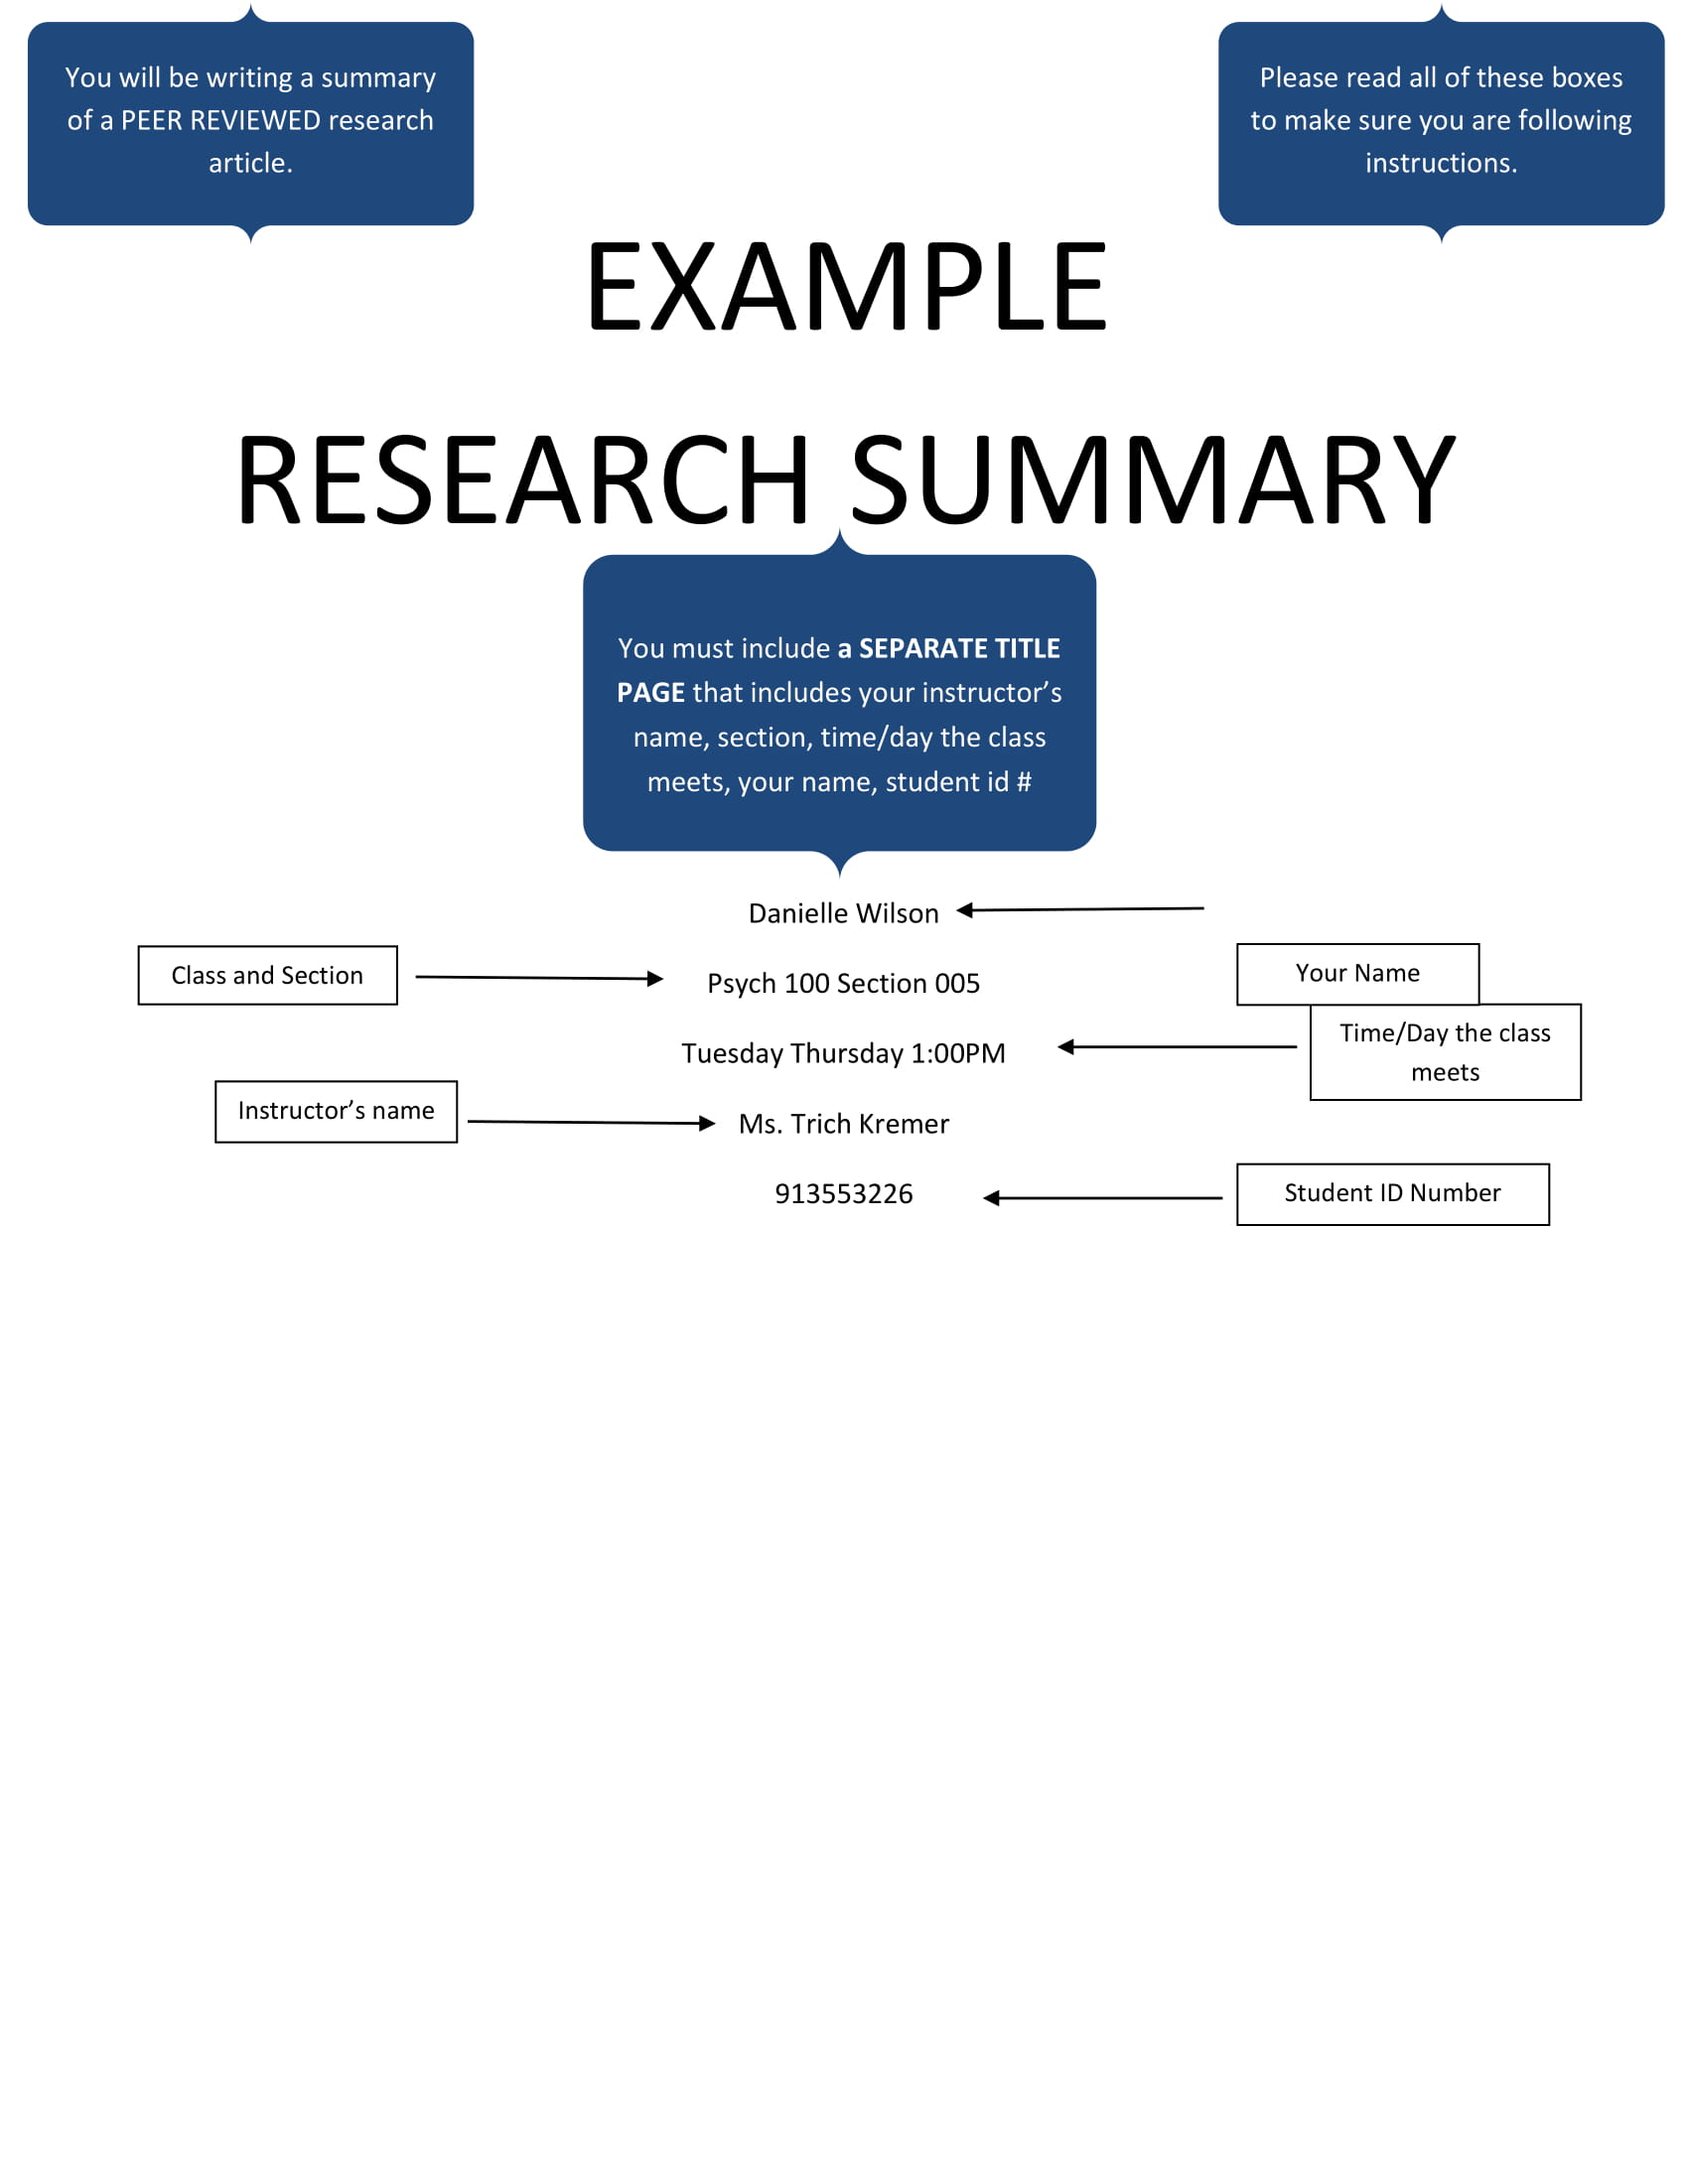 example of research summary